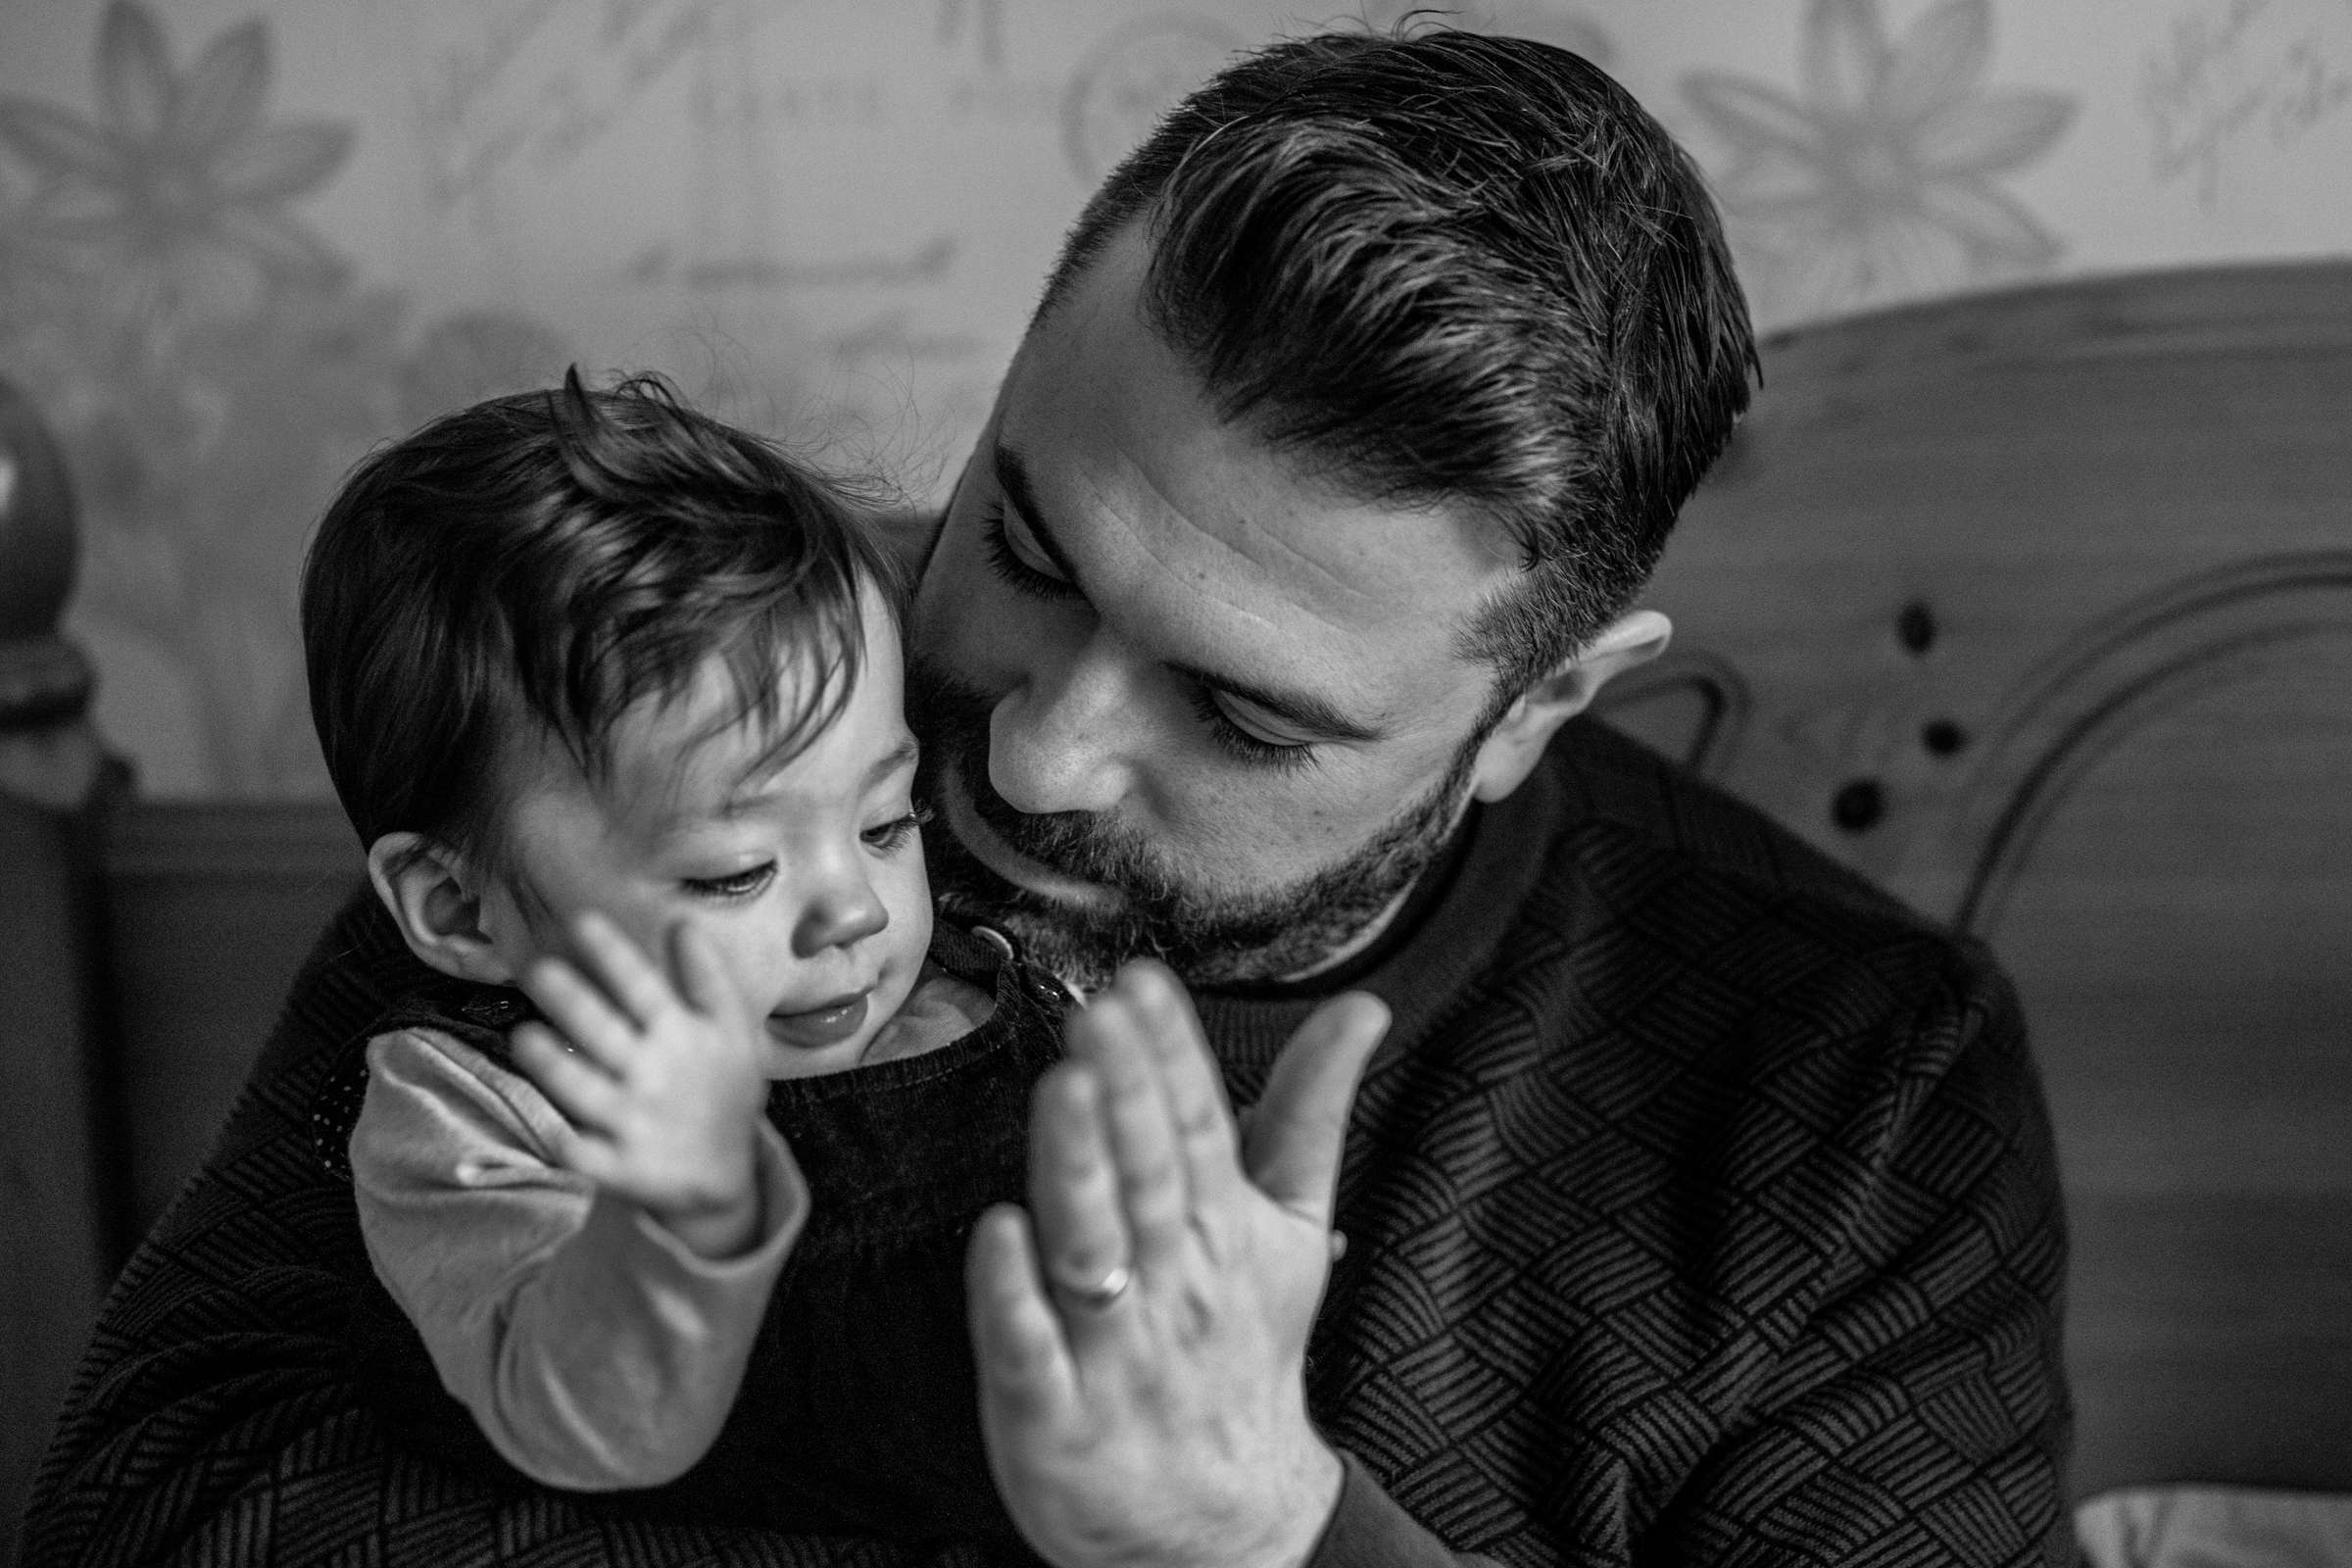 A black and white indoor portrait photo of dad and baby doing a high five